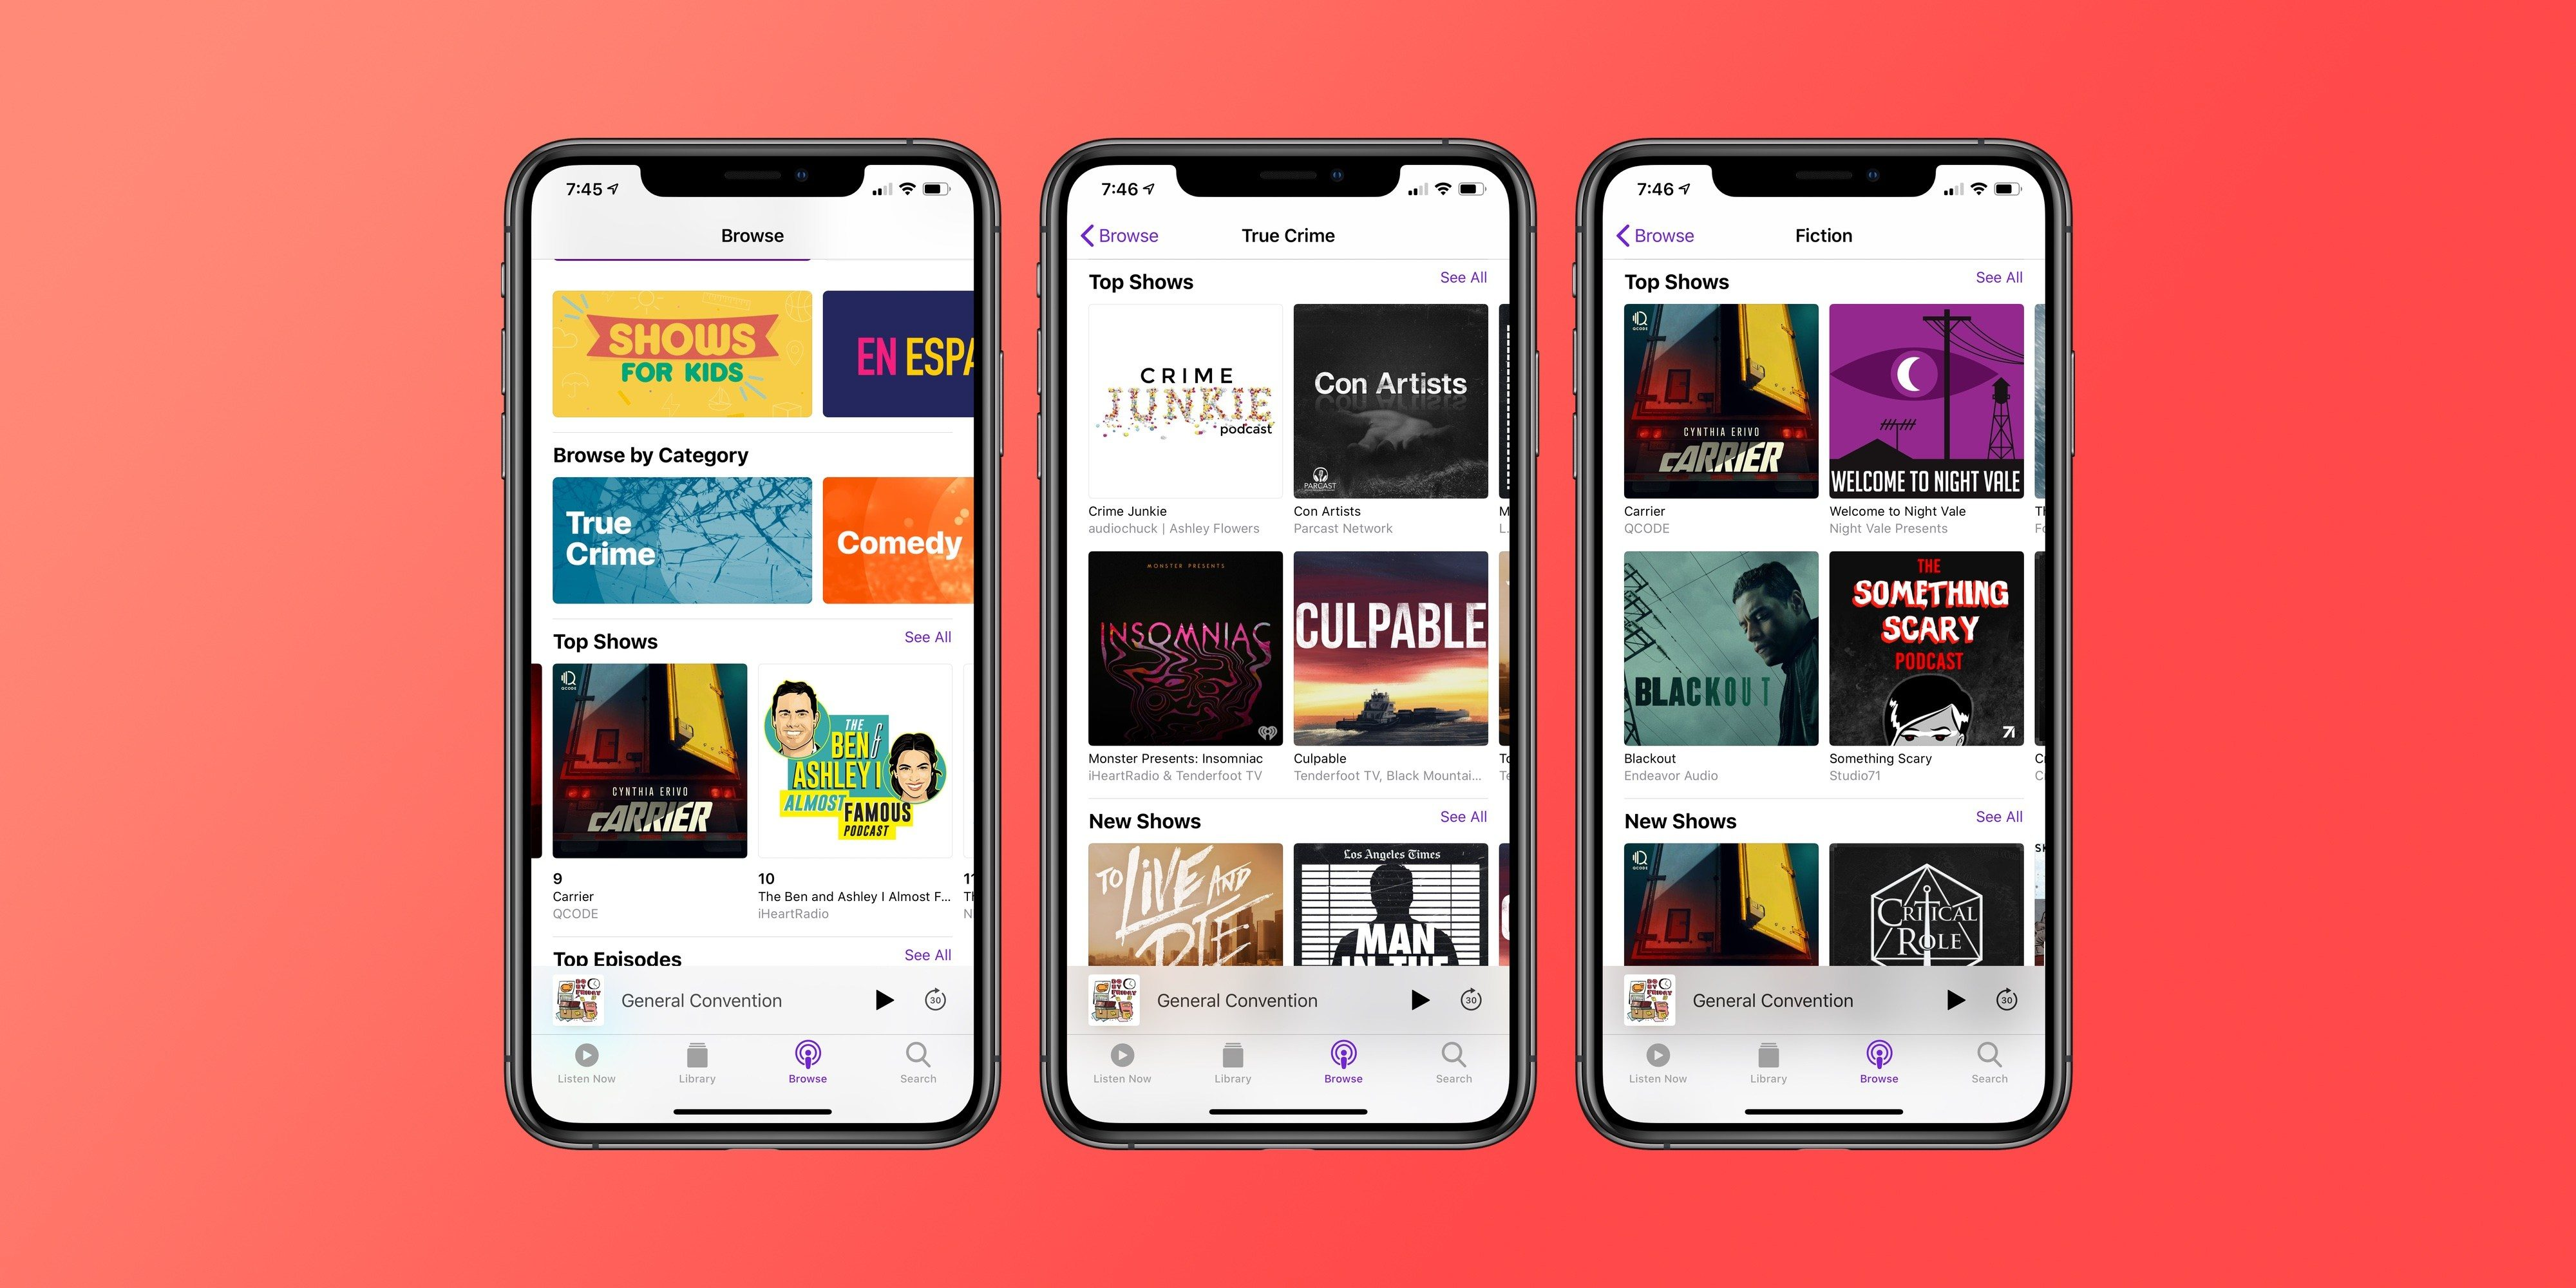 Apple is making it easier to discover new podcasts